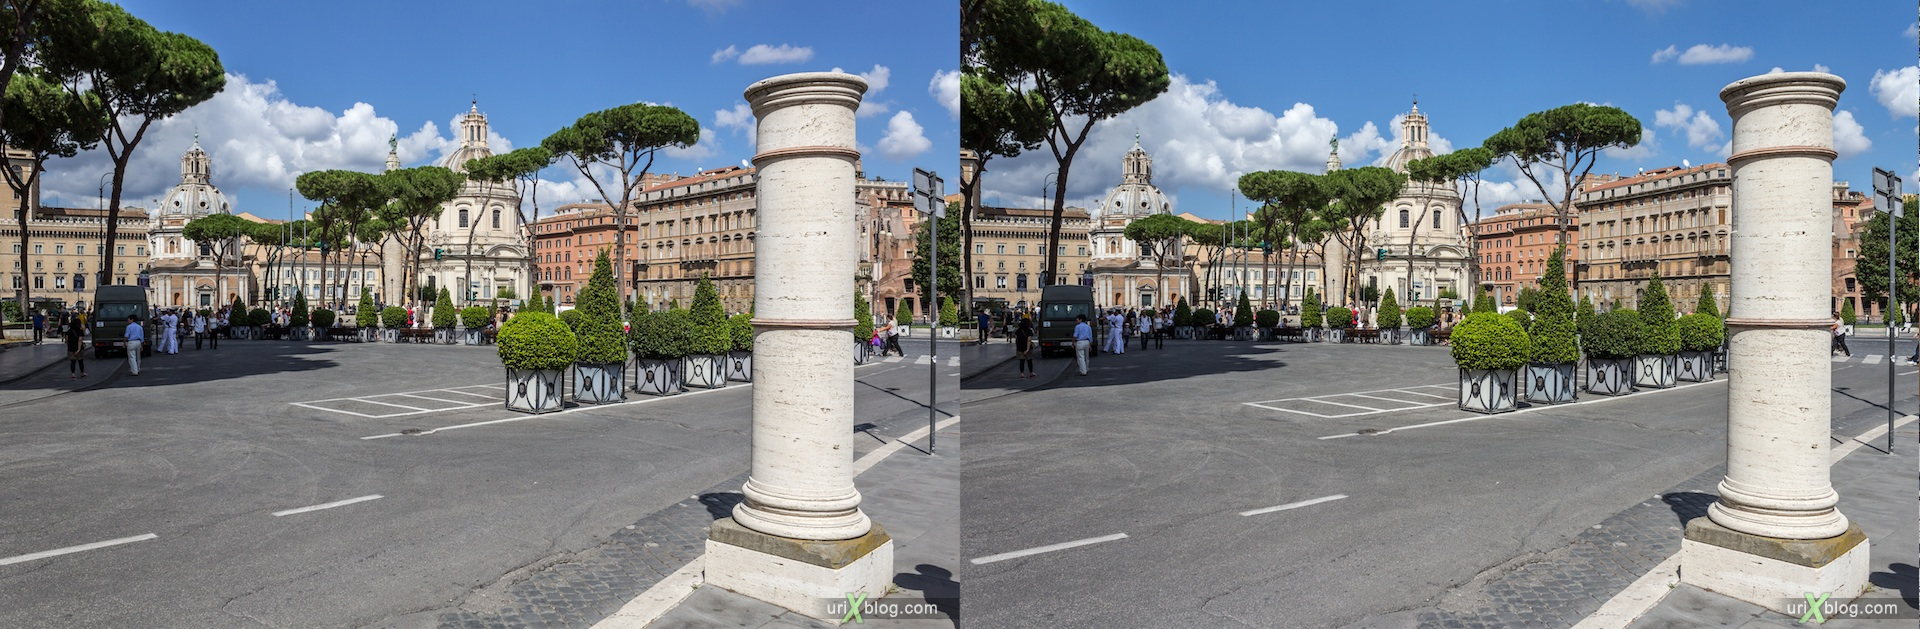 2012, Vittoriano, Roman forum, Via di San Pietro in Carcere street, Rome, Italy, Europe, 3D, stereo pair, cross-eyed, crossview, cross view stereo pair